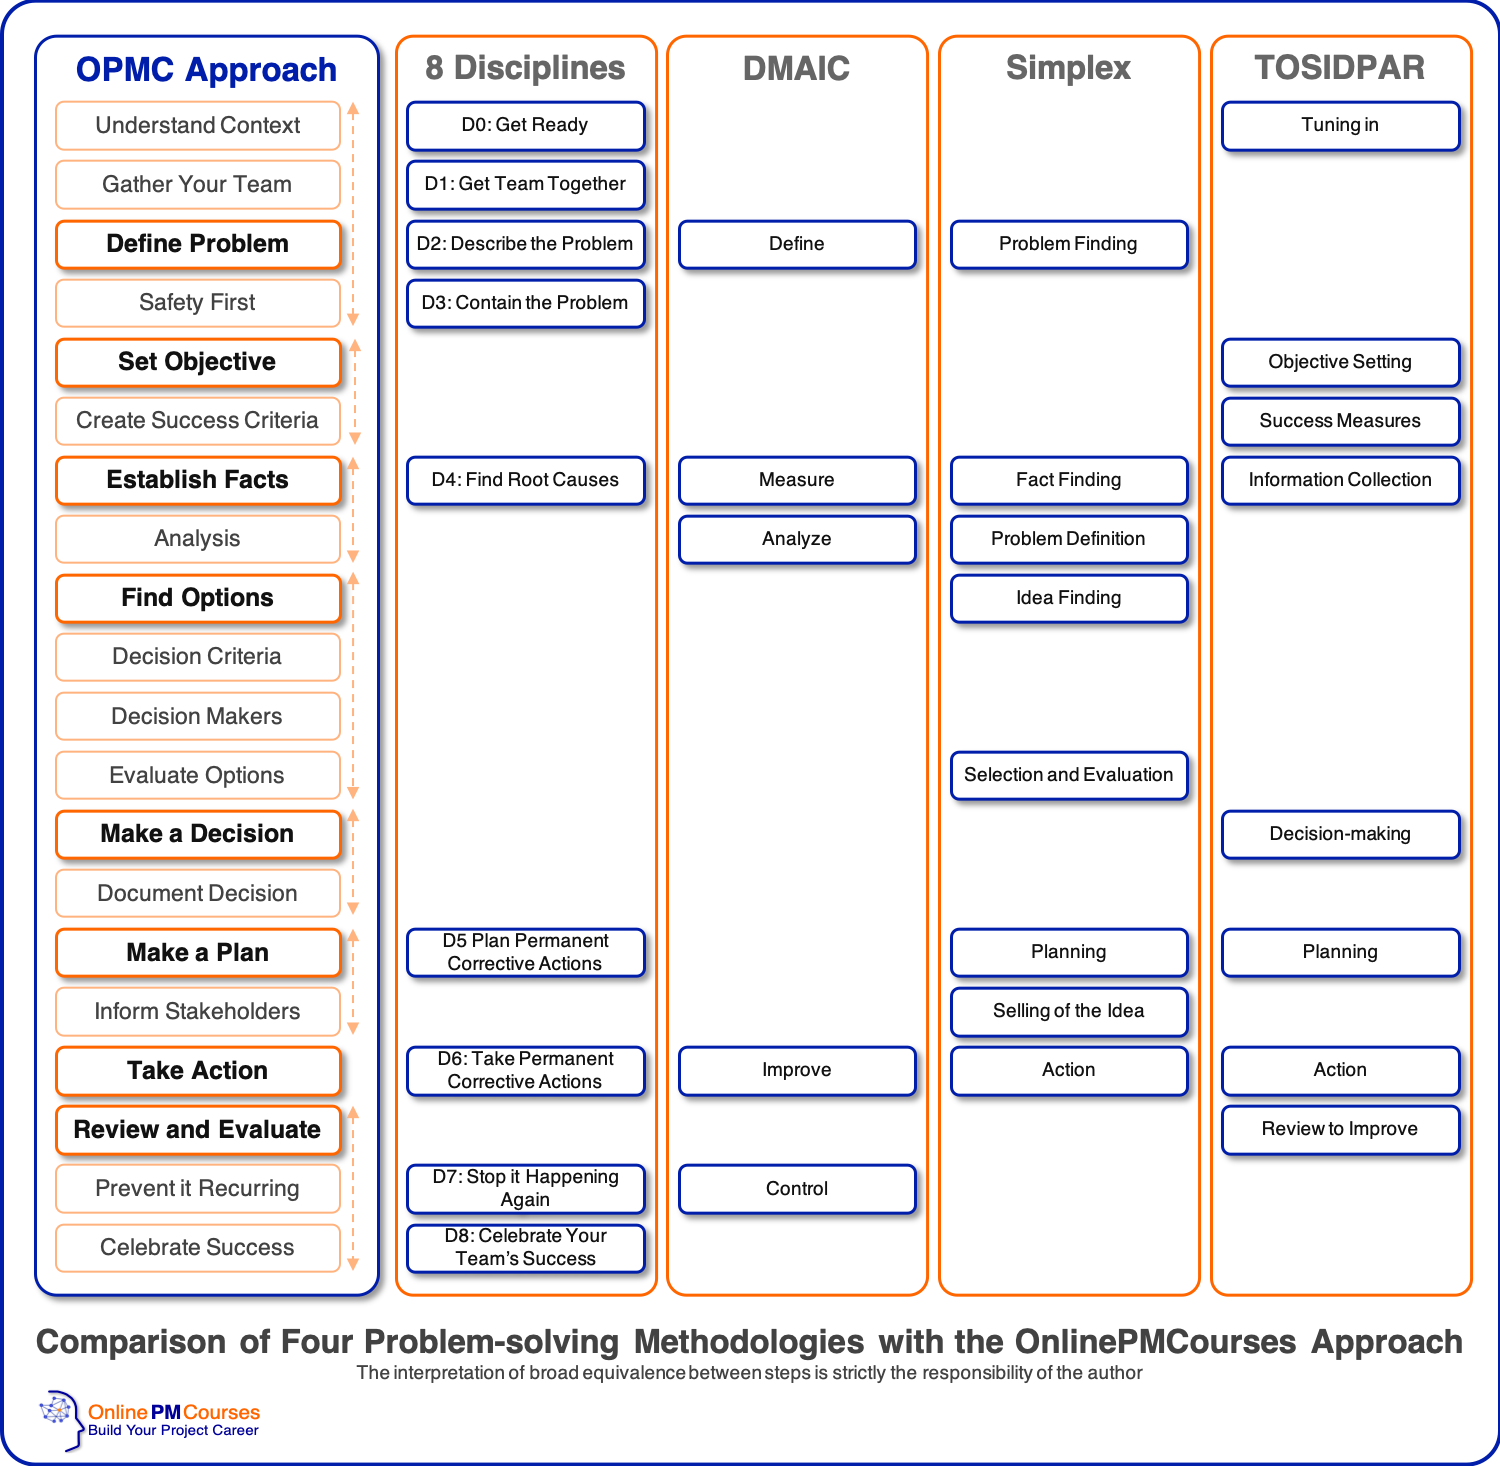 Comparison of Four Problem-solving Methodologies with the OnlinePMCourses Approach